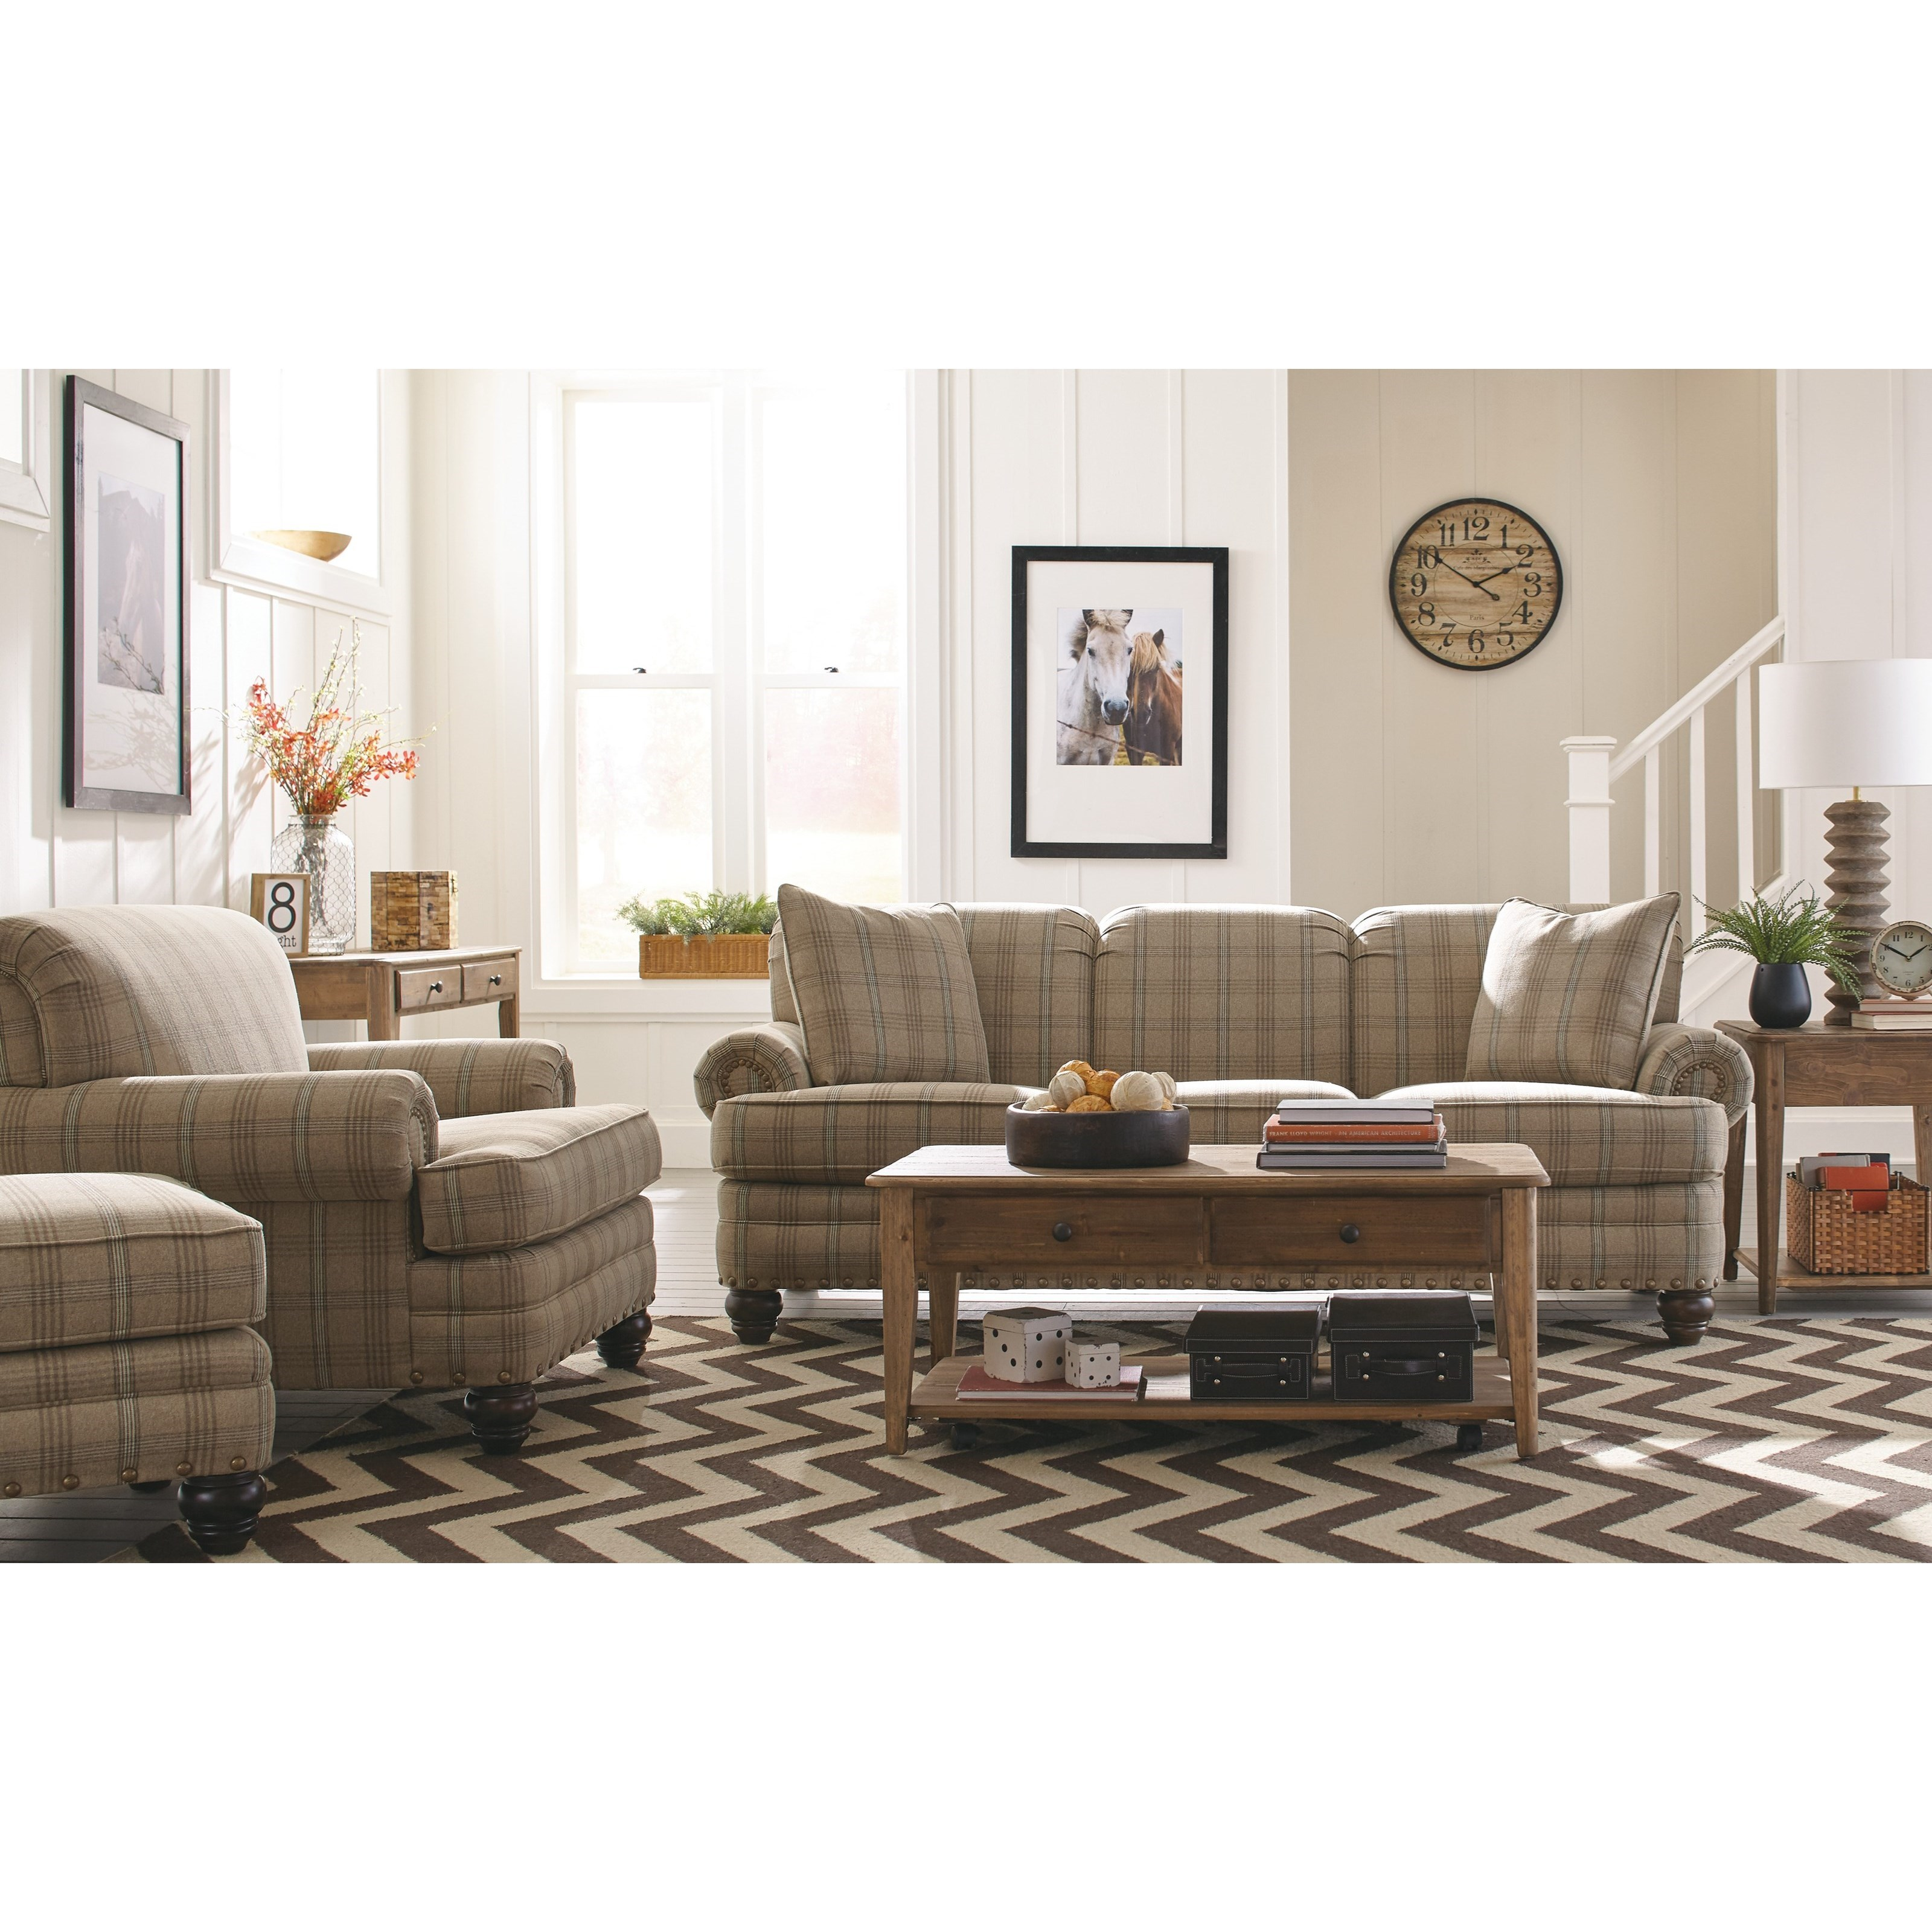 Hickory Craft 7281 Traditional Chair With Rolled Arms And